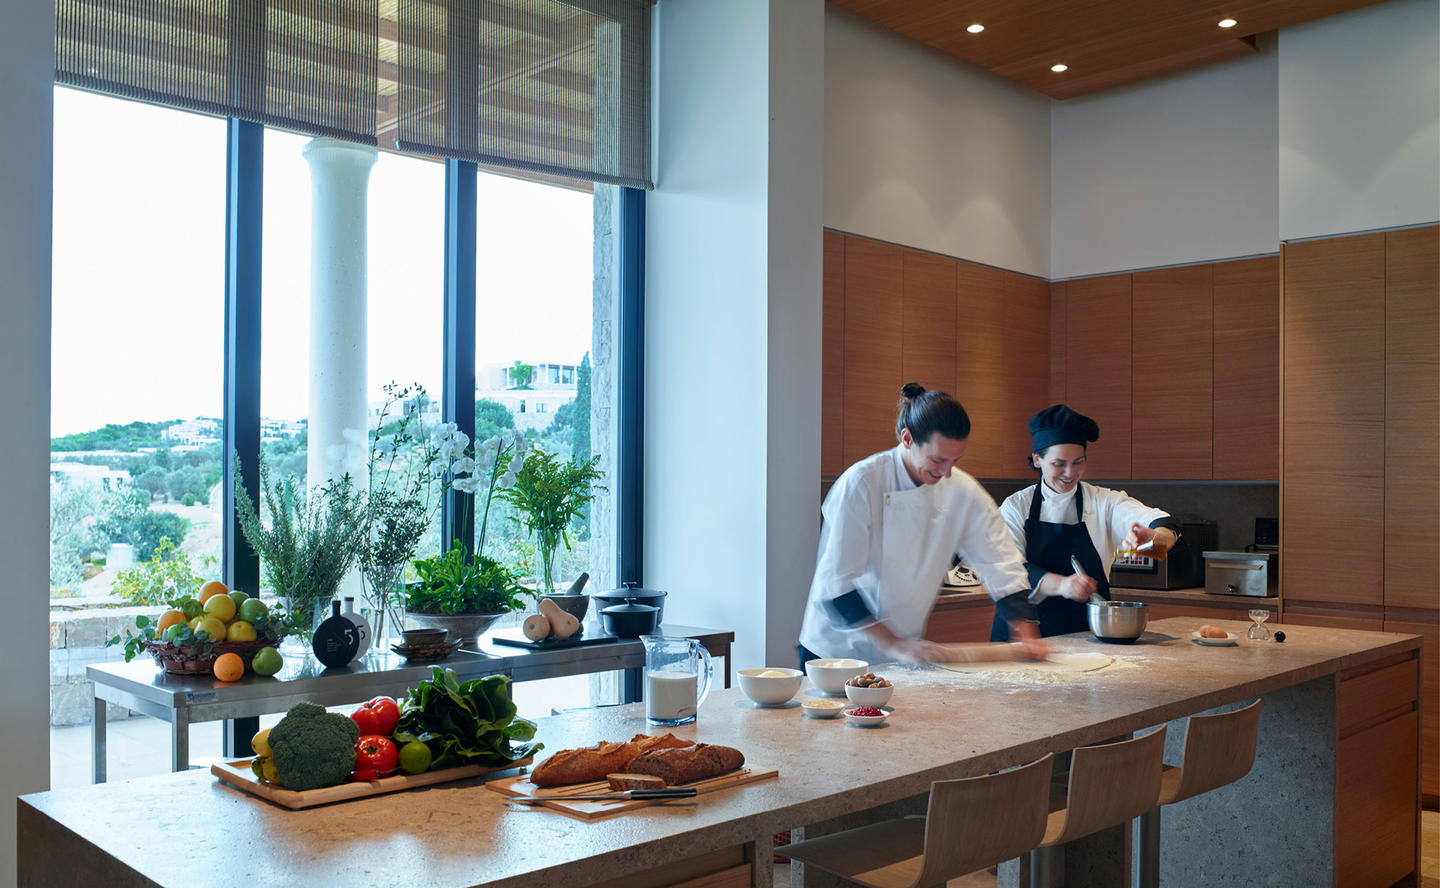 Private Chef's in Kitchen, Villa 20 - Amanzoe, Greece